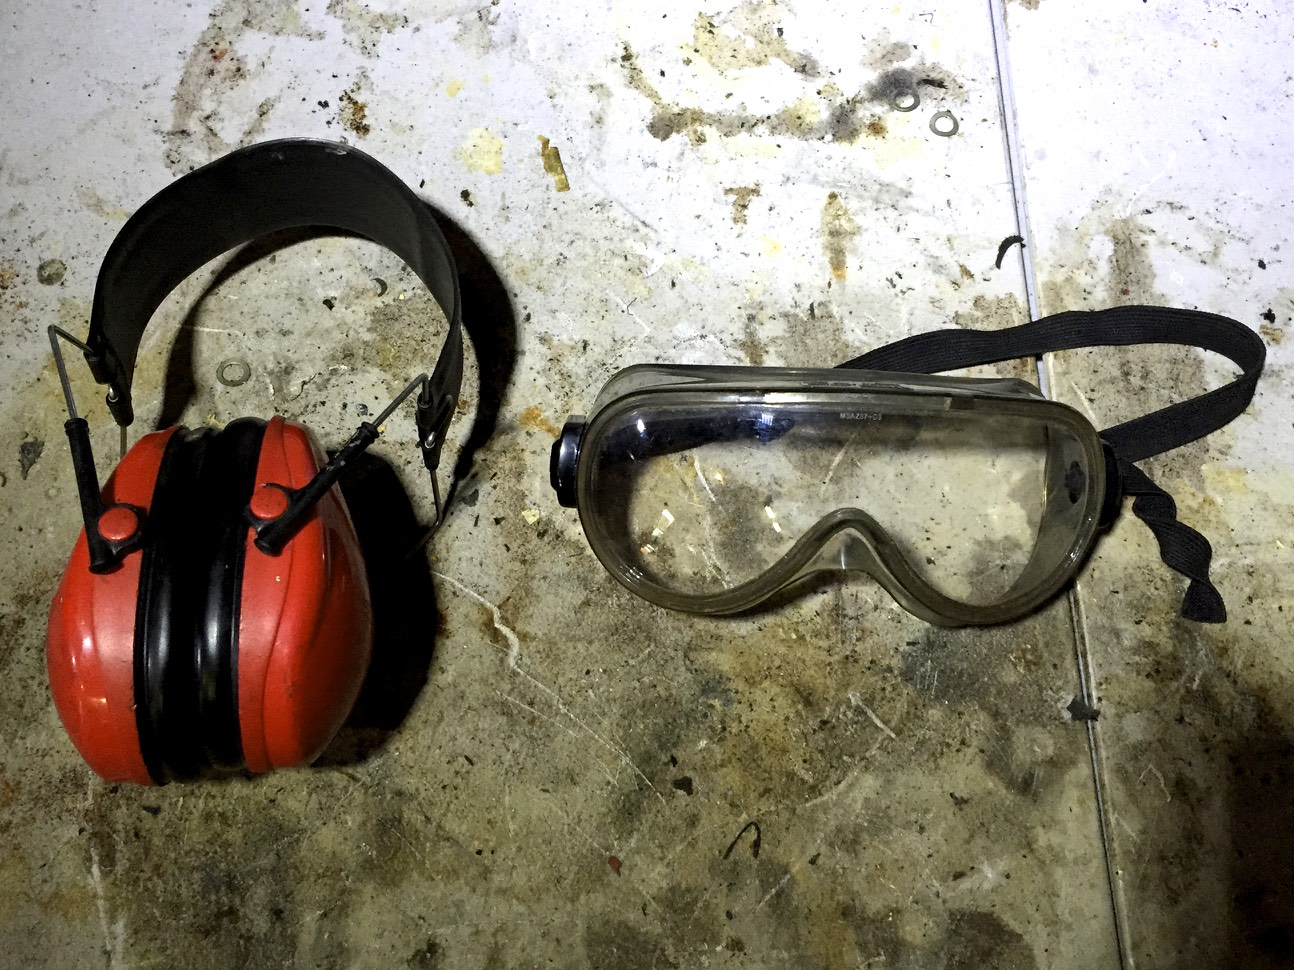 Muff-style hearing protectors and safety goggles.